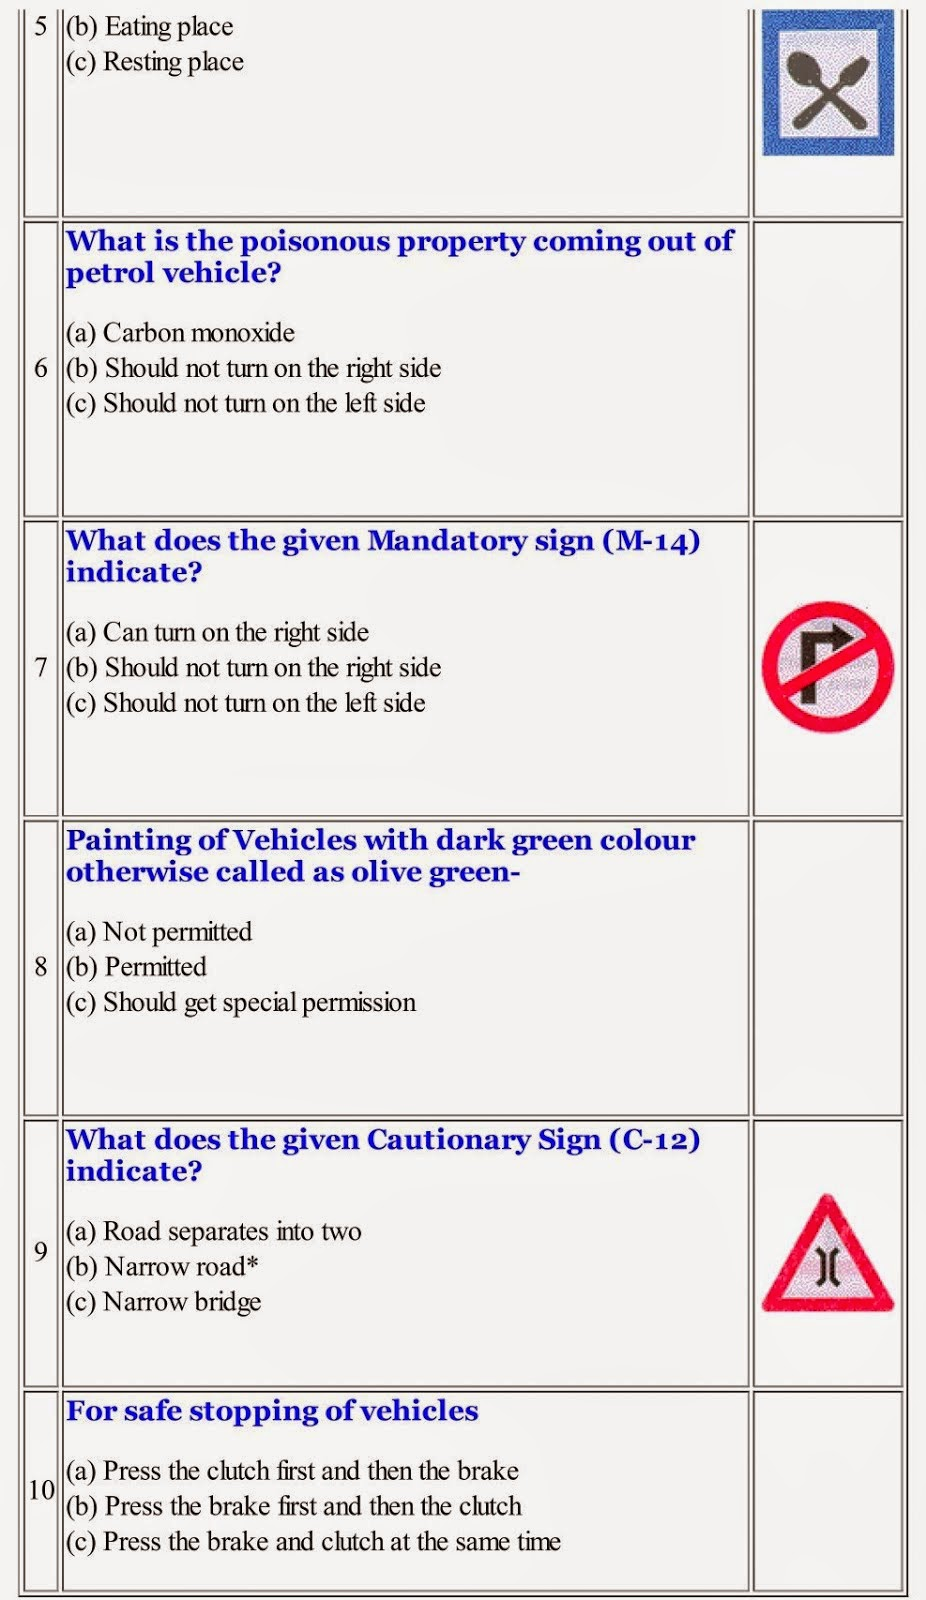 Examinations of traffic rules: a selection of sites